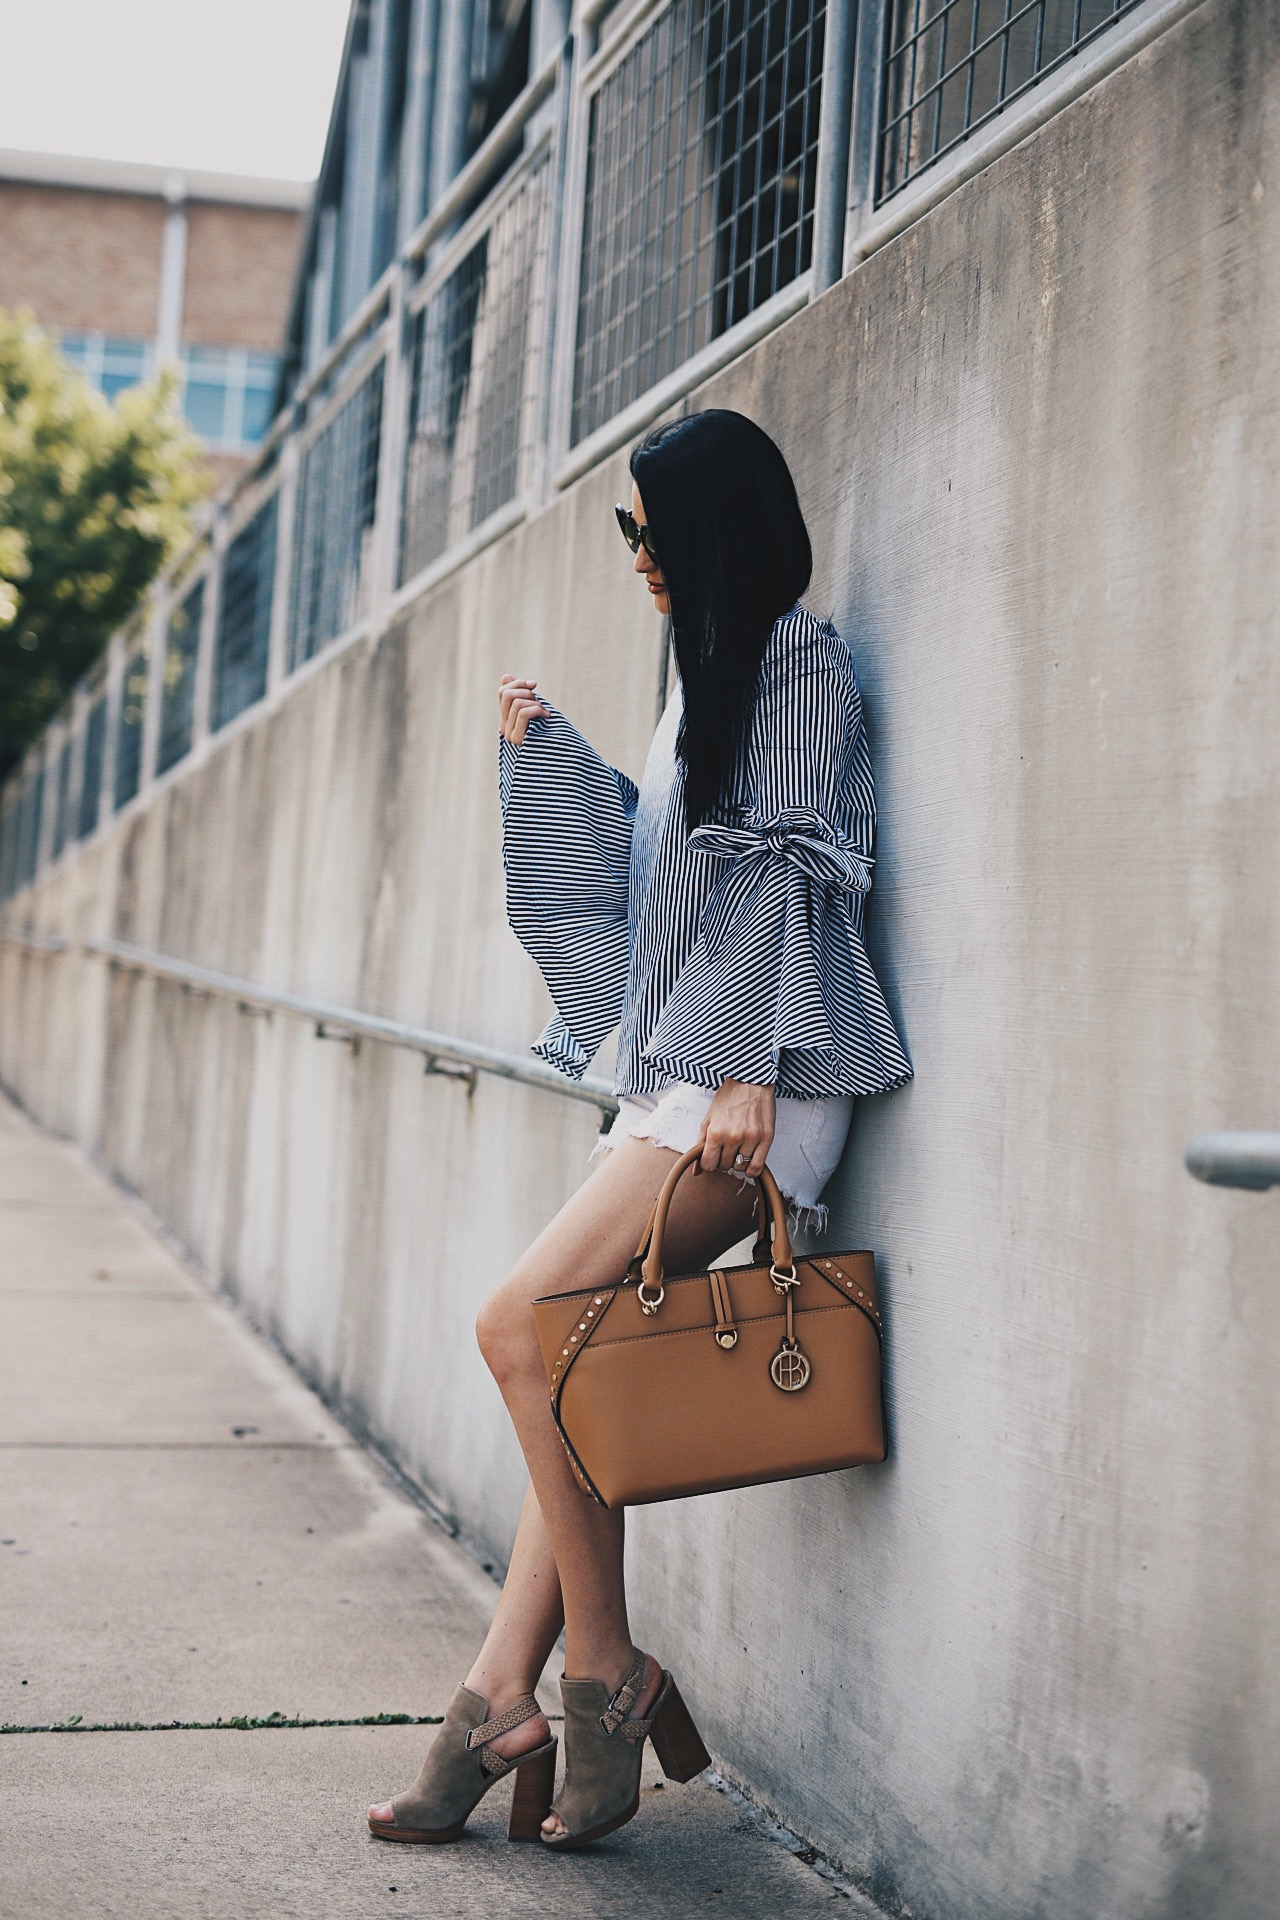 Ashley of DTK Austin shares her favorite summer bell-sleeved top from Chicwish with a Henri Bendel tote. Click for more information and photos of the perfect summer outfit.